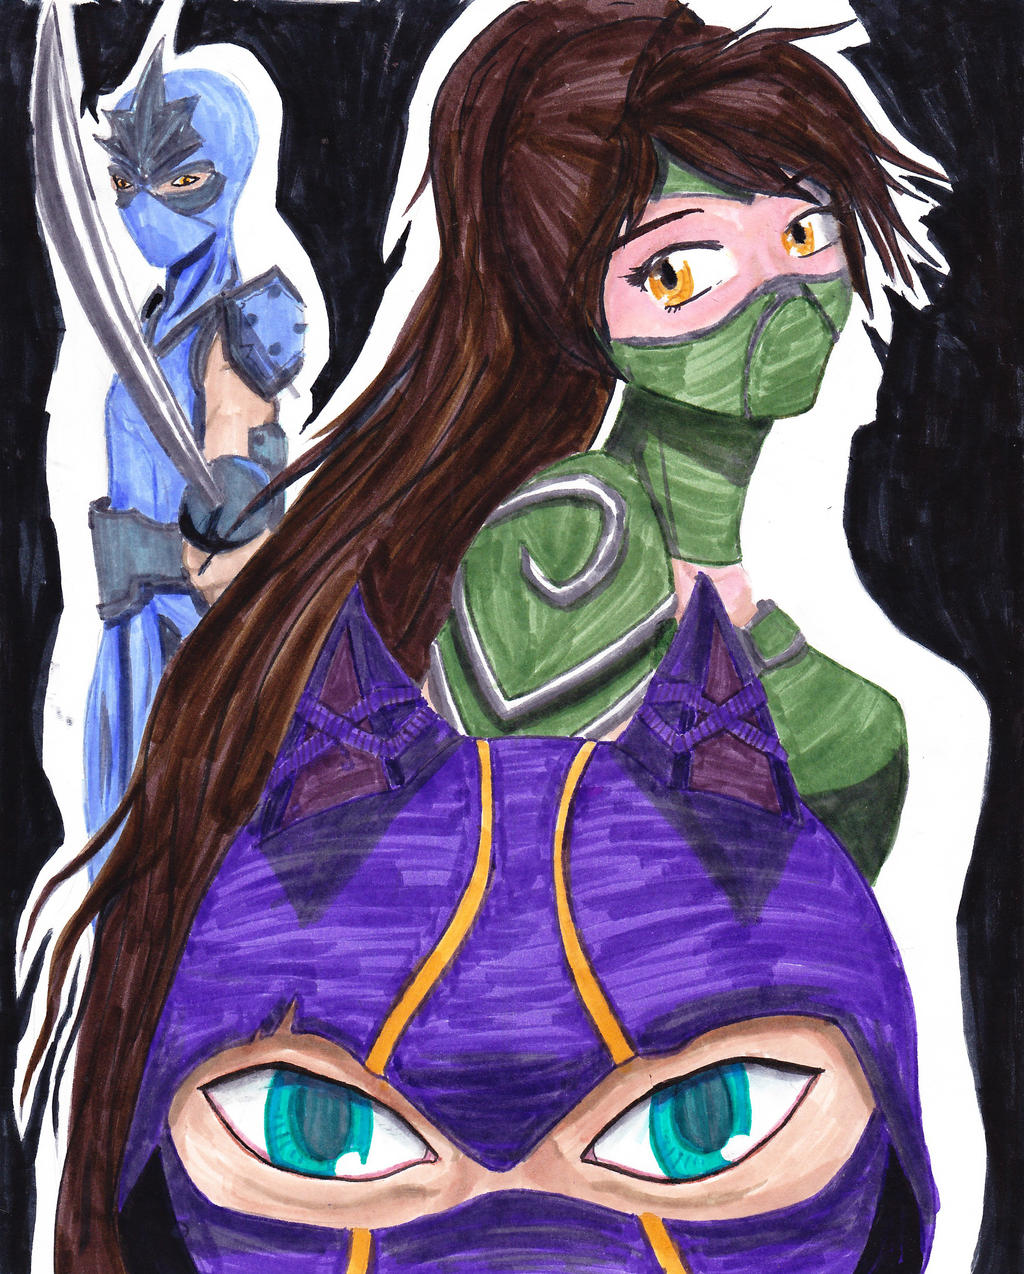 LoL Shen, Akali, and Kennen by ForsytheFrontier on DeviantArt